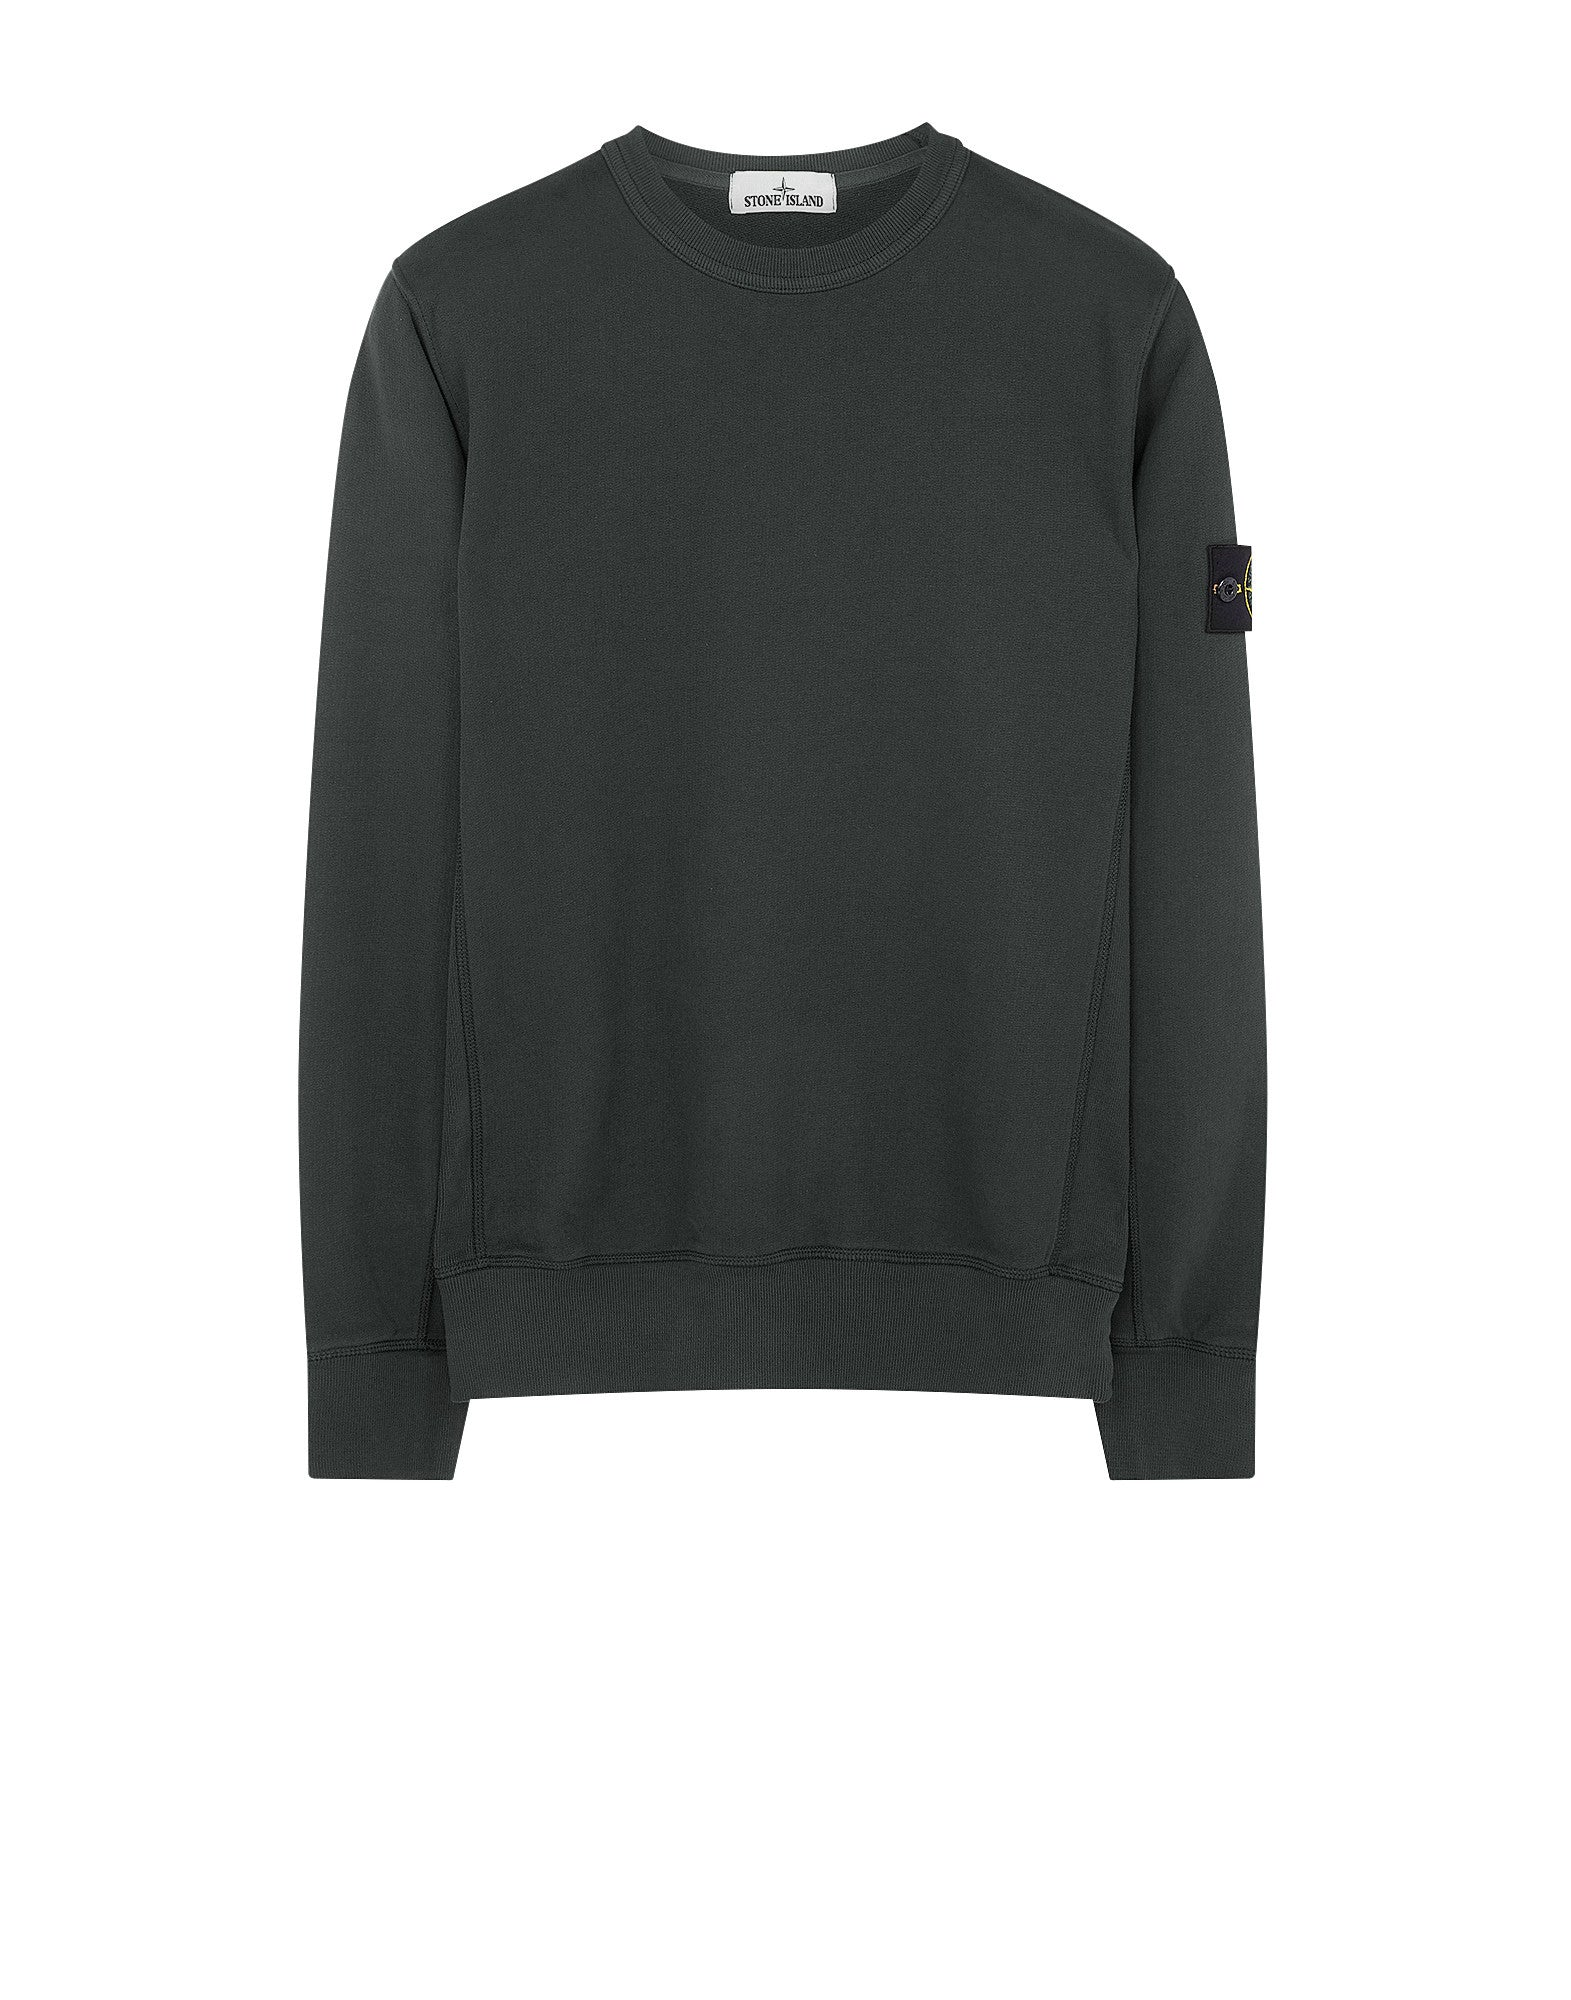 65320 Garment-Dyed Sweatshirt in Dark Green